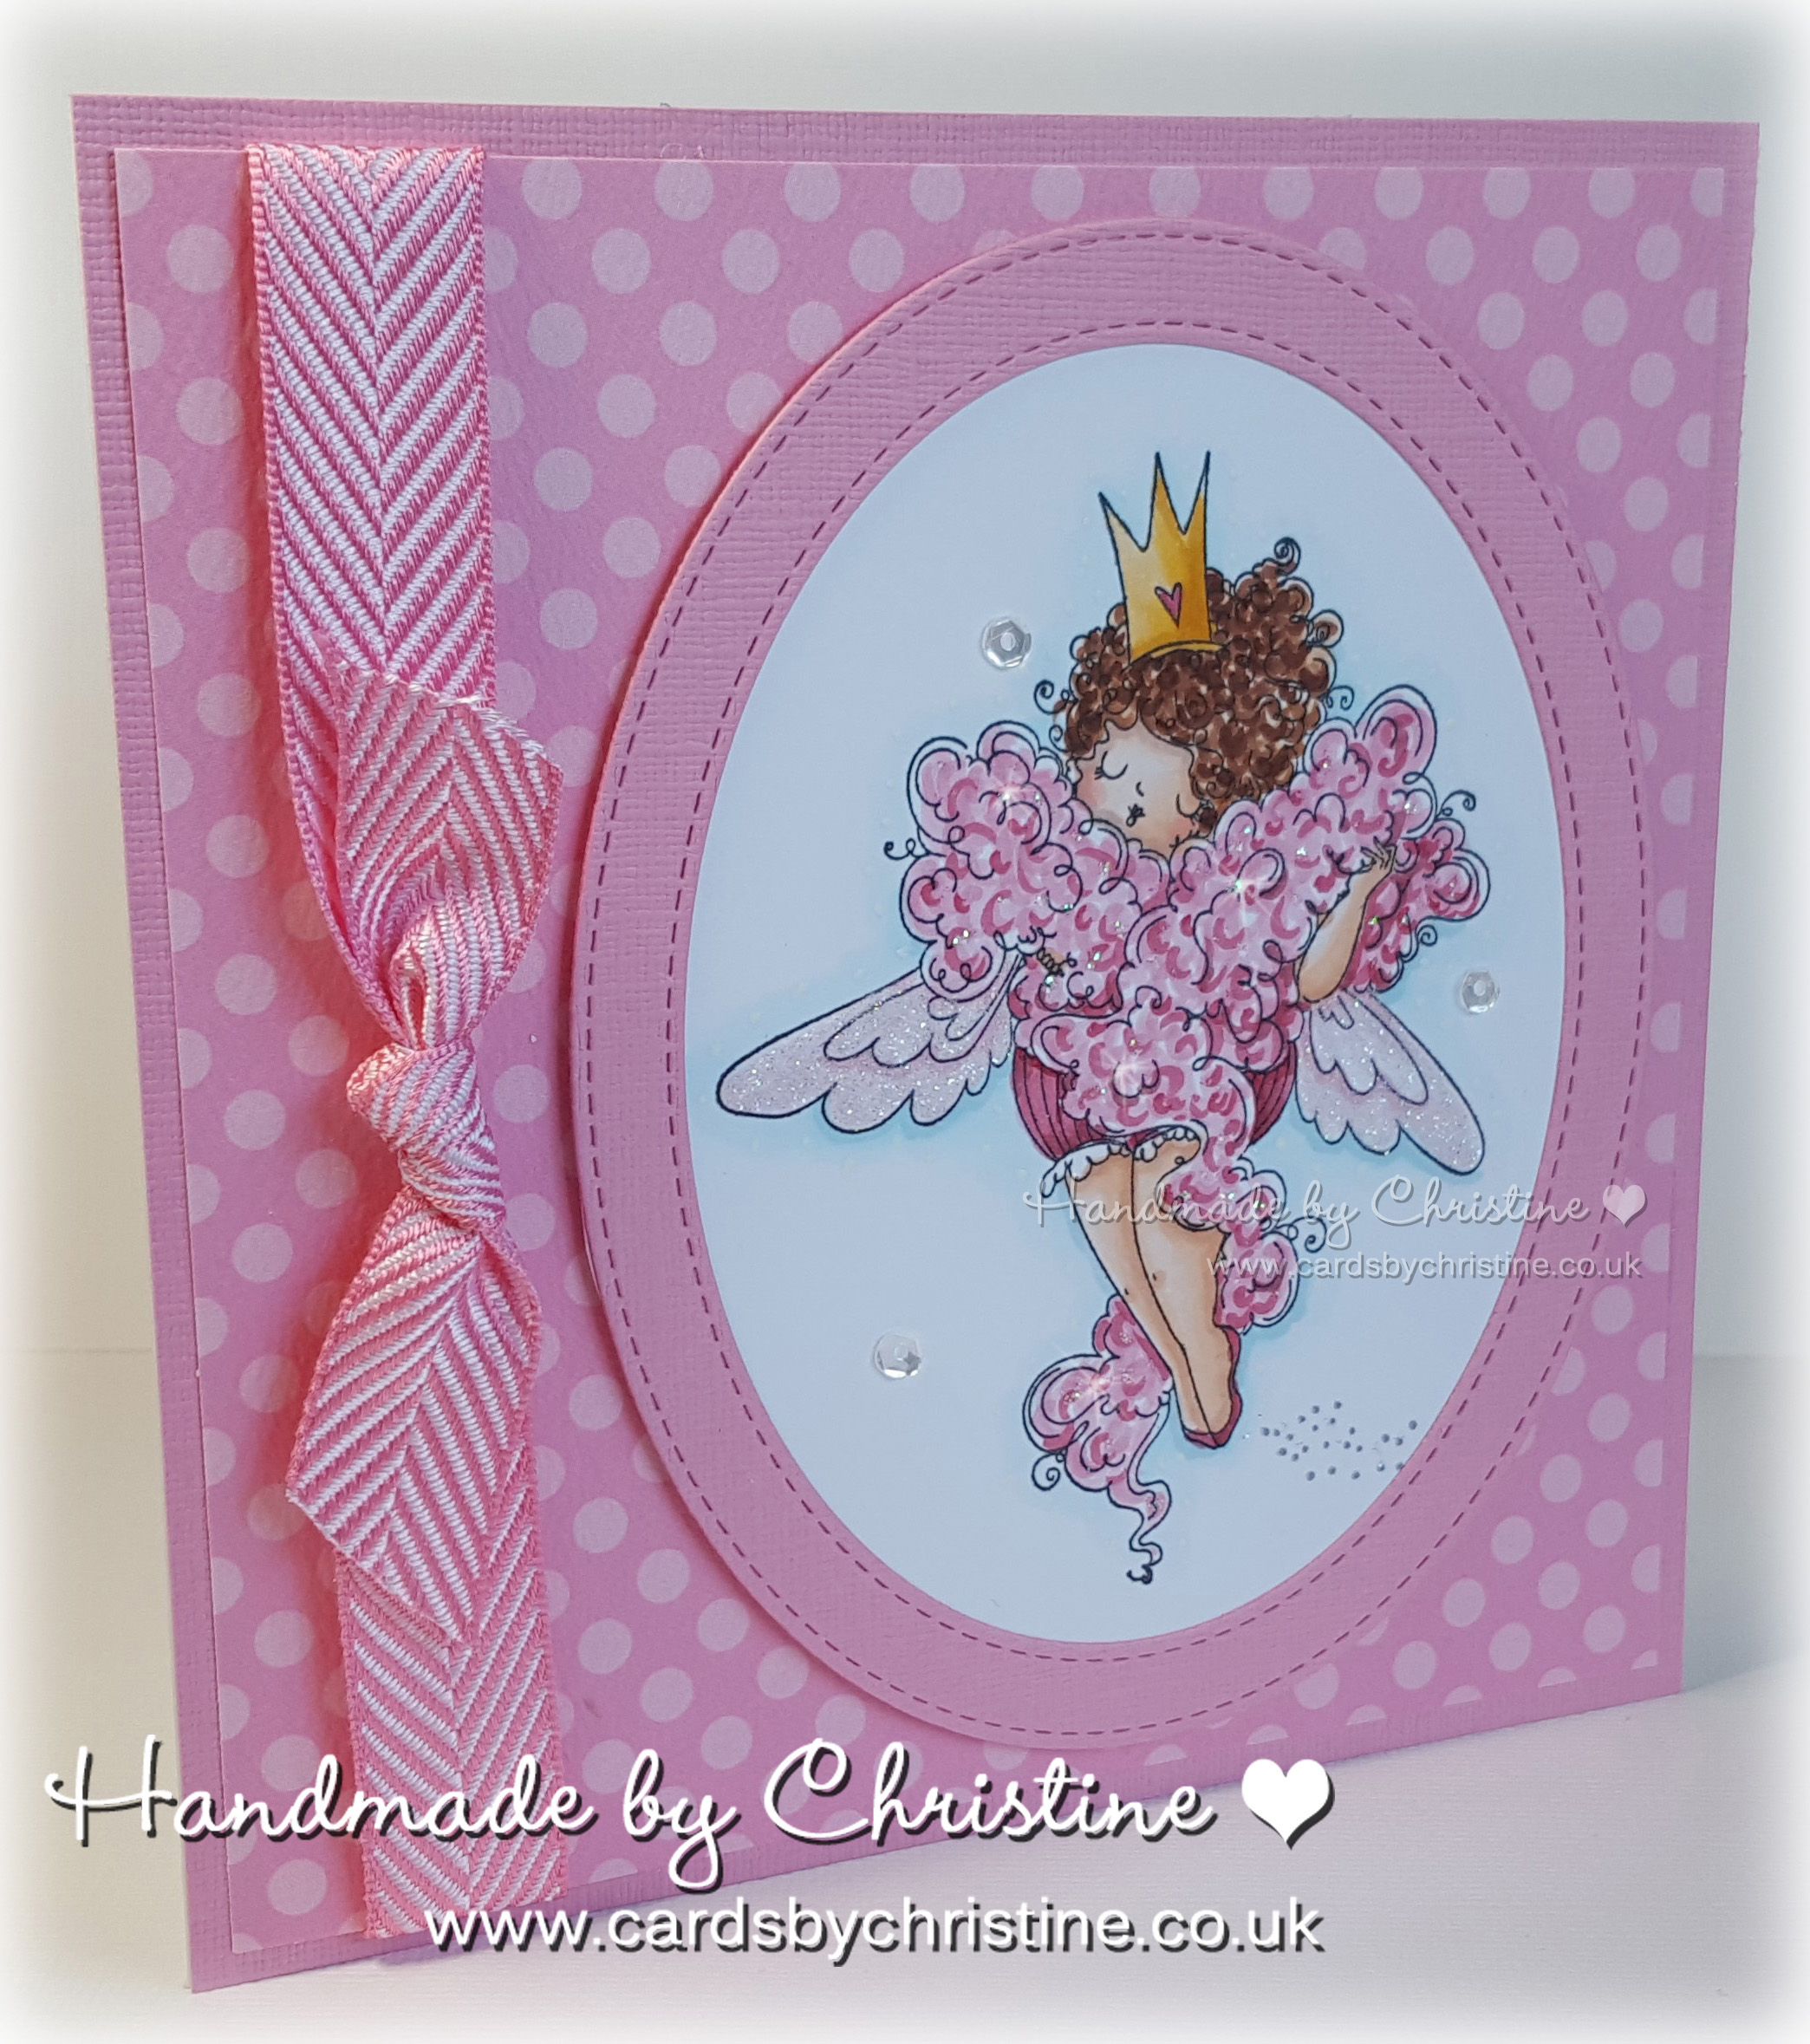 Wonderful Wednesdays With on the Stamping Bella Blog- featuring EDNA the DIVA rubber stamp